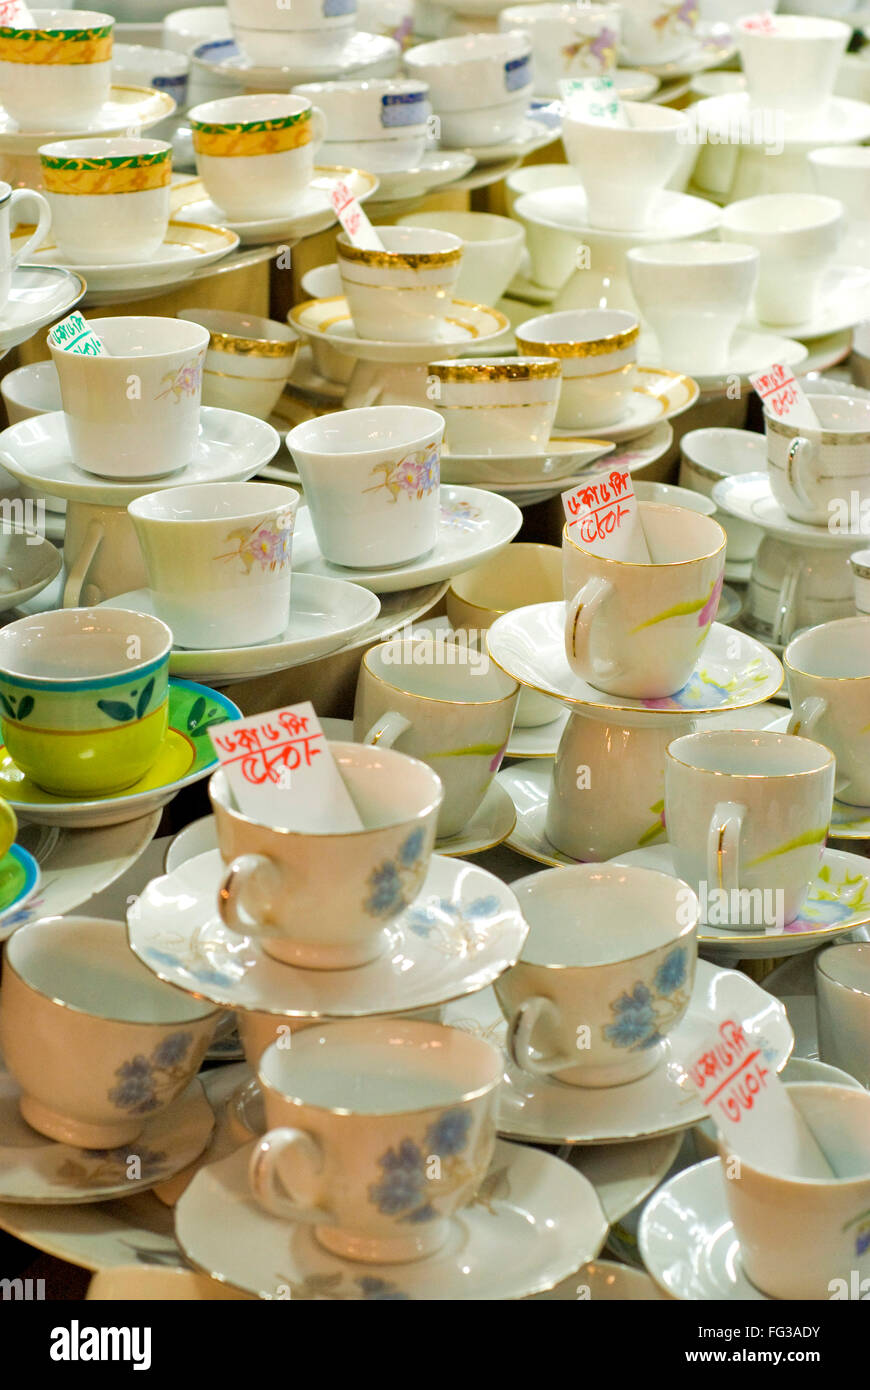 Empty tea cups and saucers for sale in New Market ; Dhaka ; Bangladesh - Stock Image